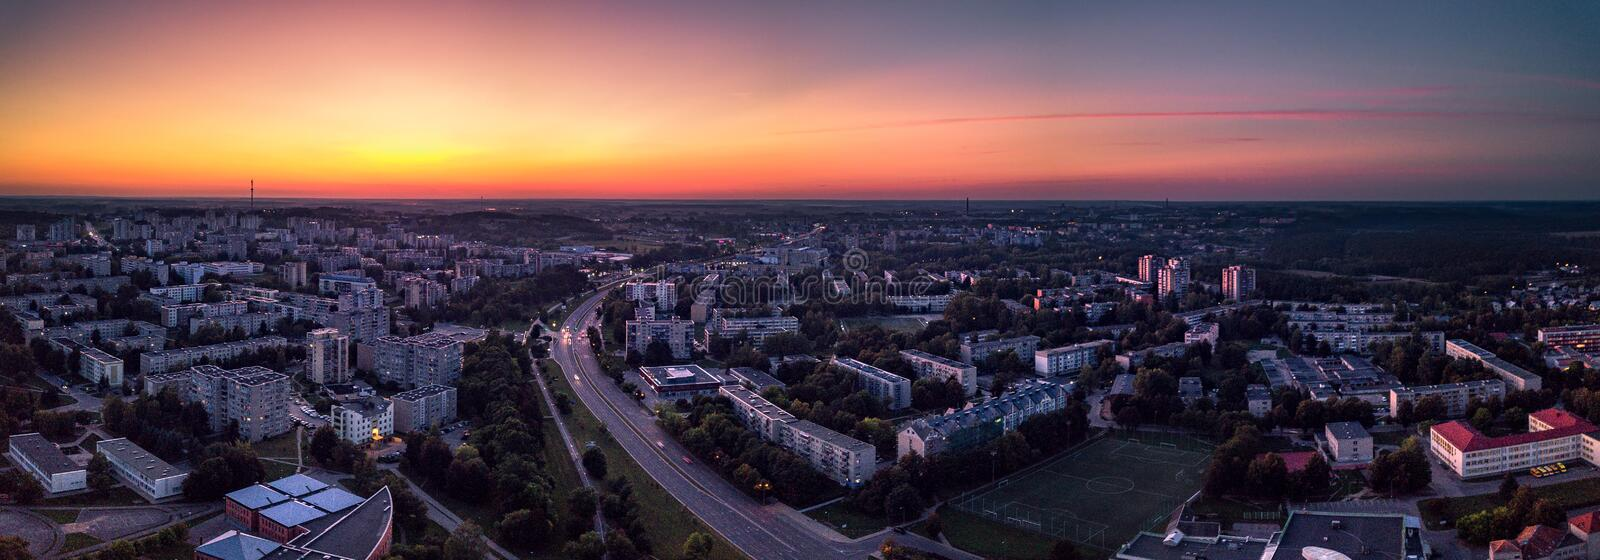 Alytus city at sunset. Alytus city panorama at sunset, Lithuania royalty free stock photography